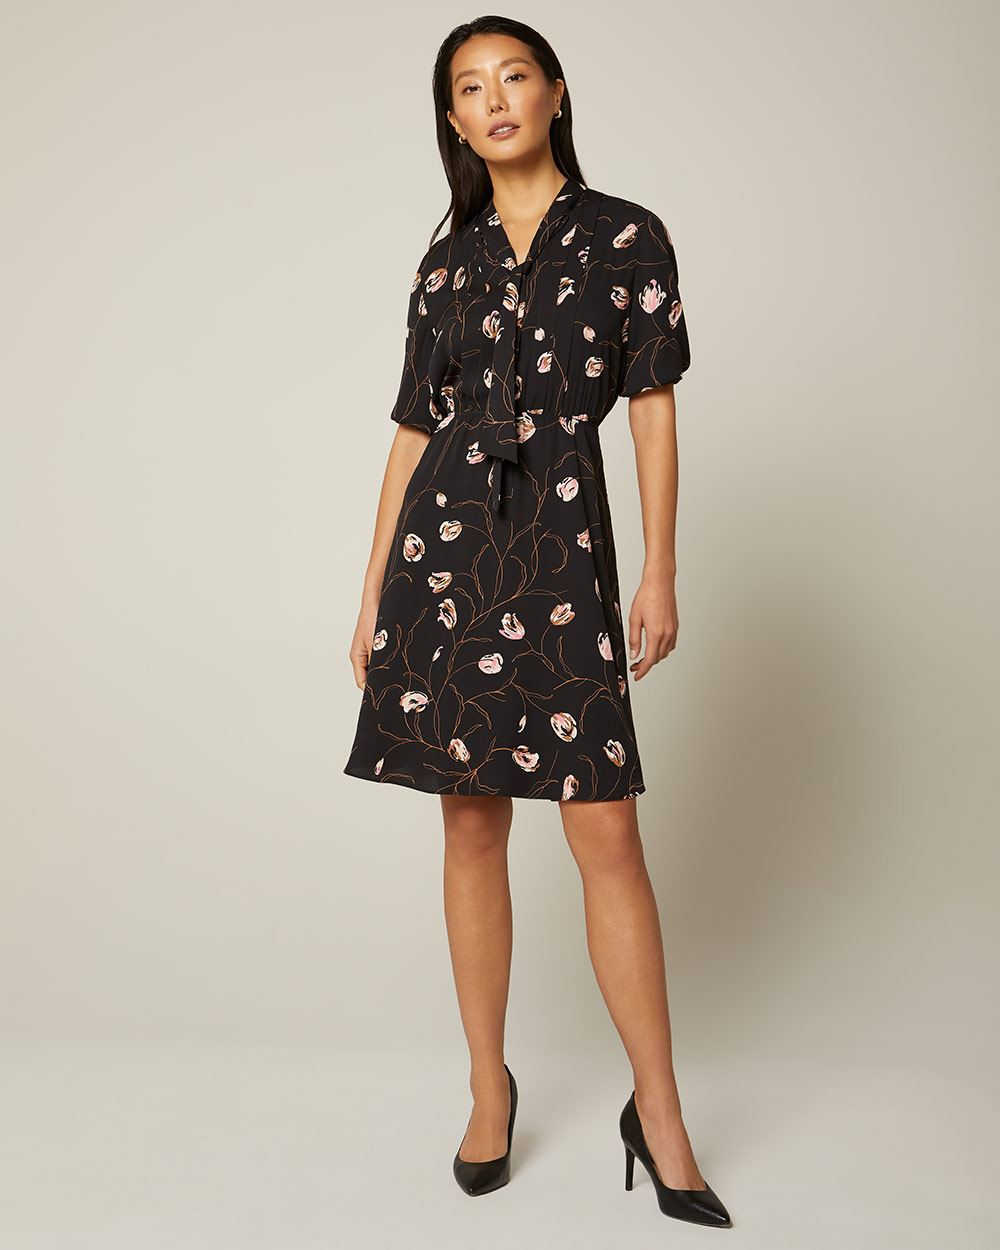 Short sleeve Fit and flare dress with neck tie